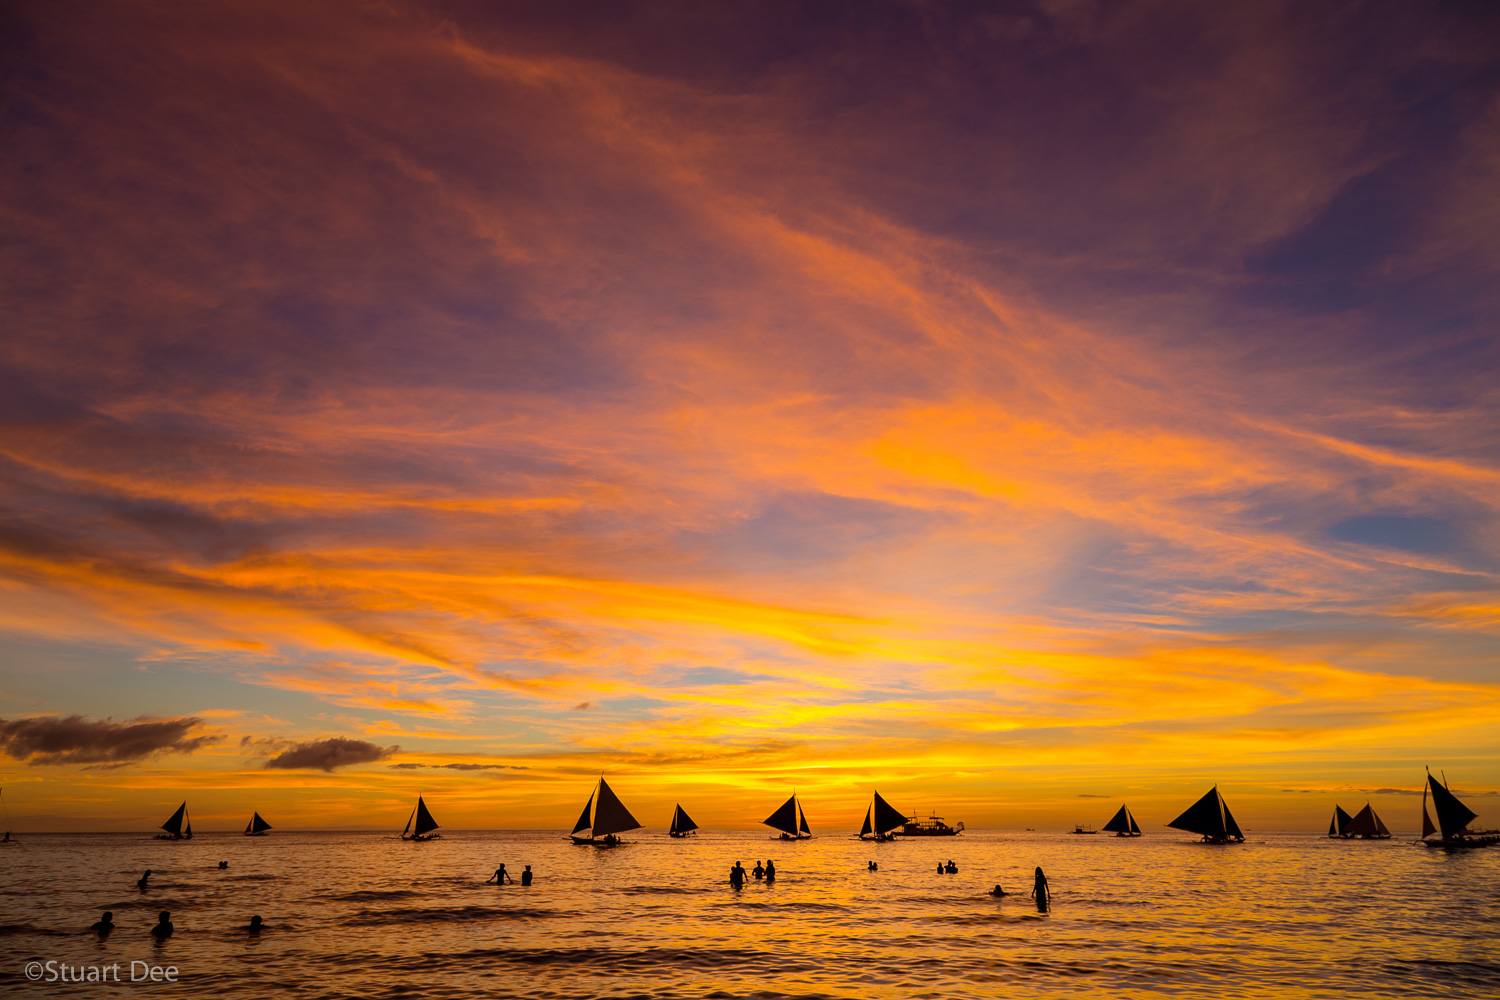 Boracay, Malay, Aklan, Philippines. Boracay has consistently ranked as one of the top islands in the world.